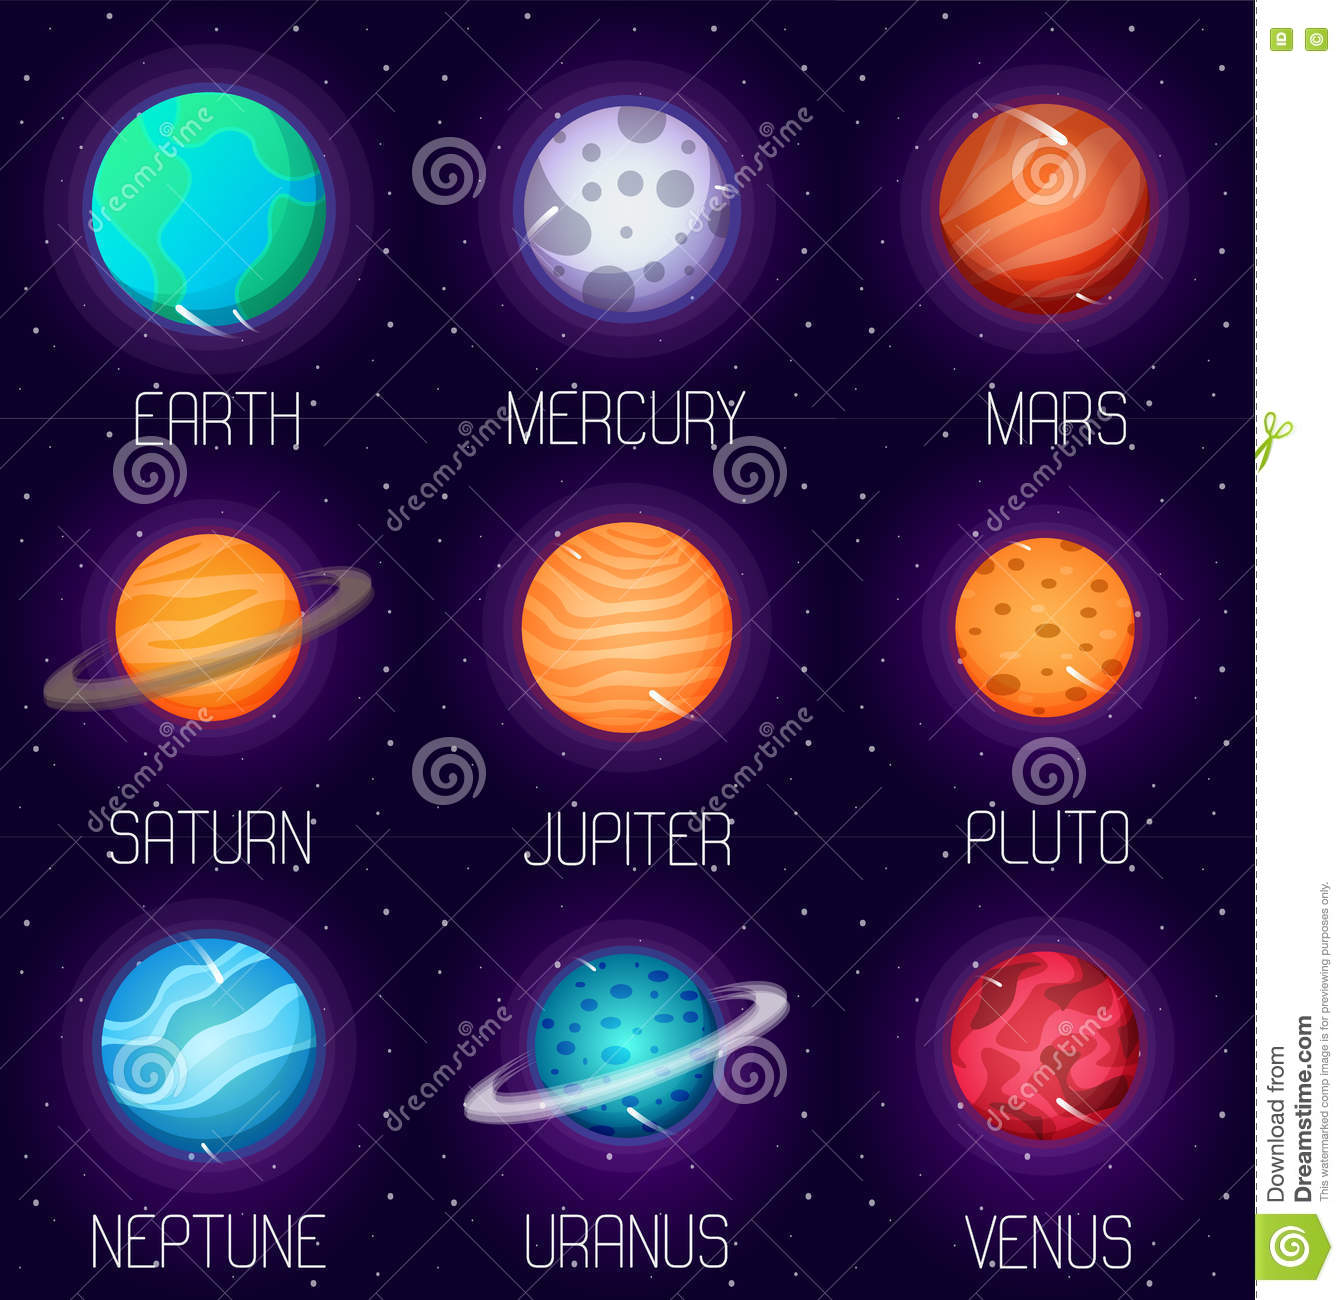 Planets cartoons illustrations vector stock images for Outer space design richmond